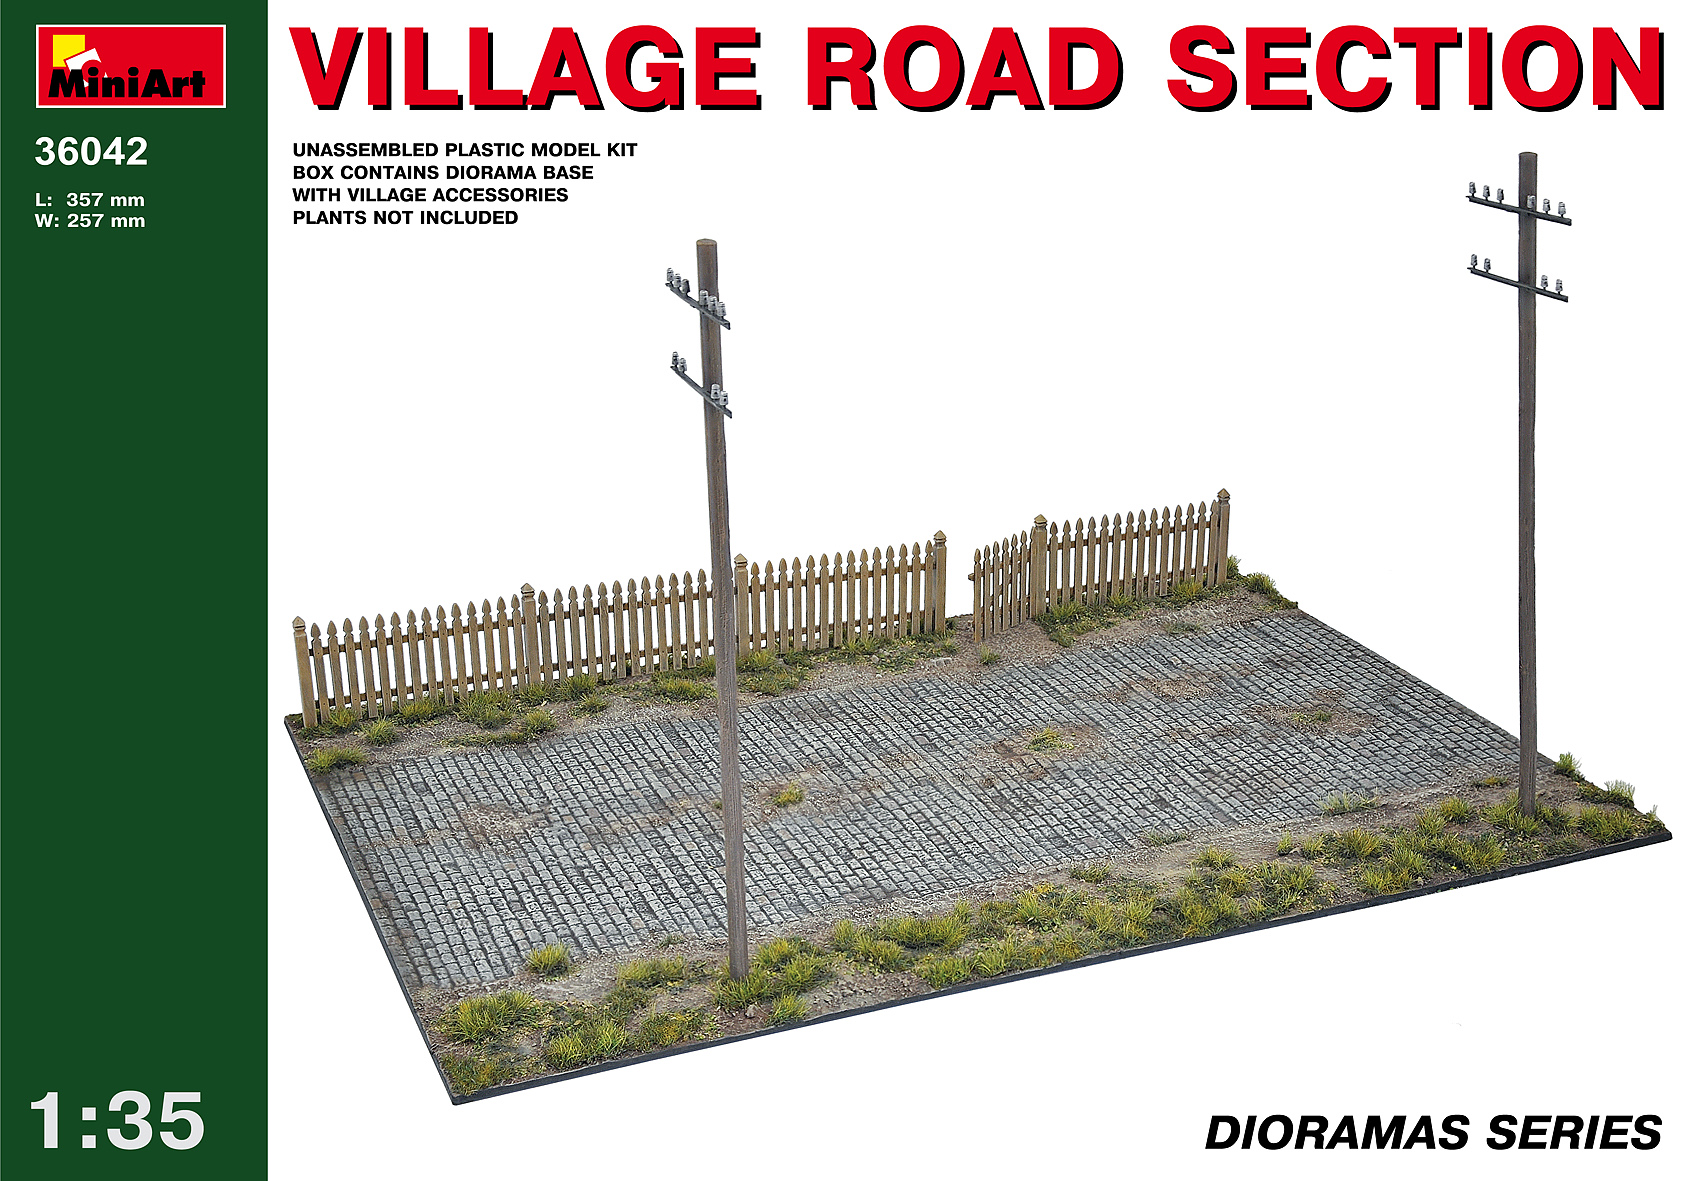 36042 VILLAGE ROAD SECTION